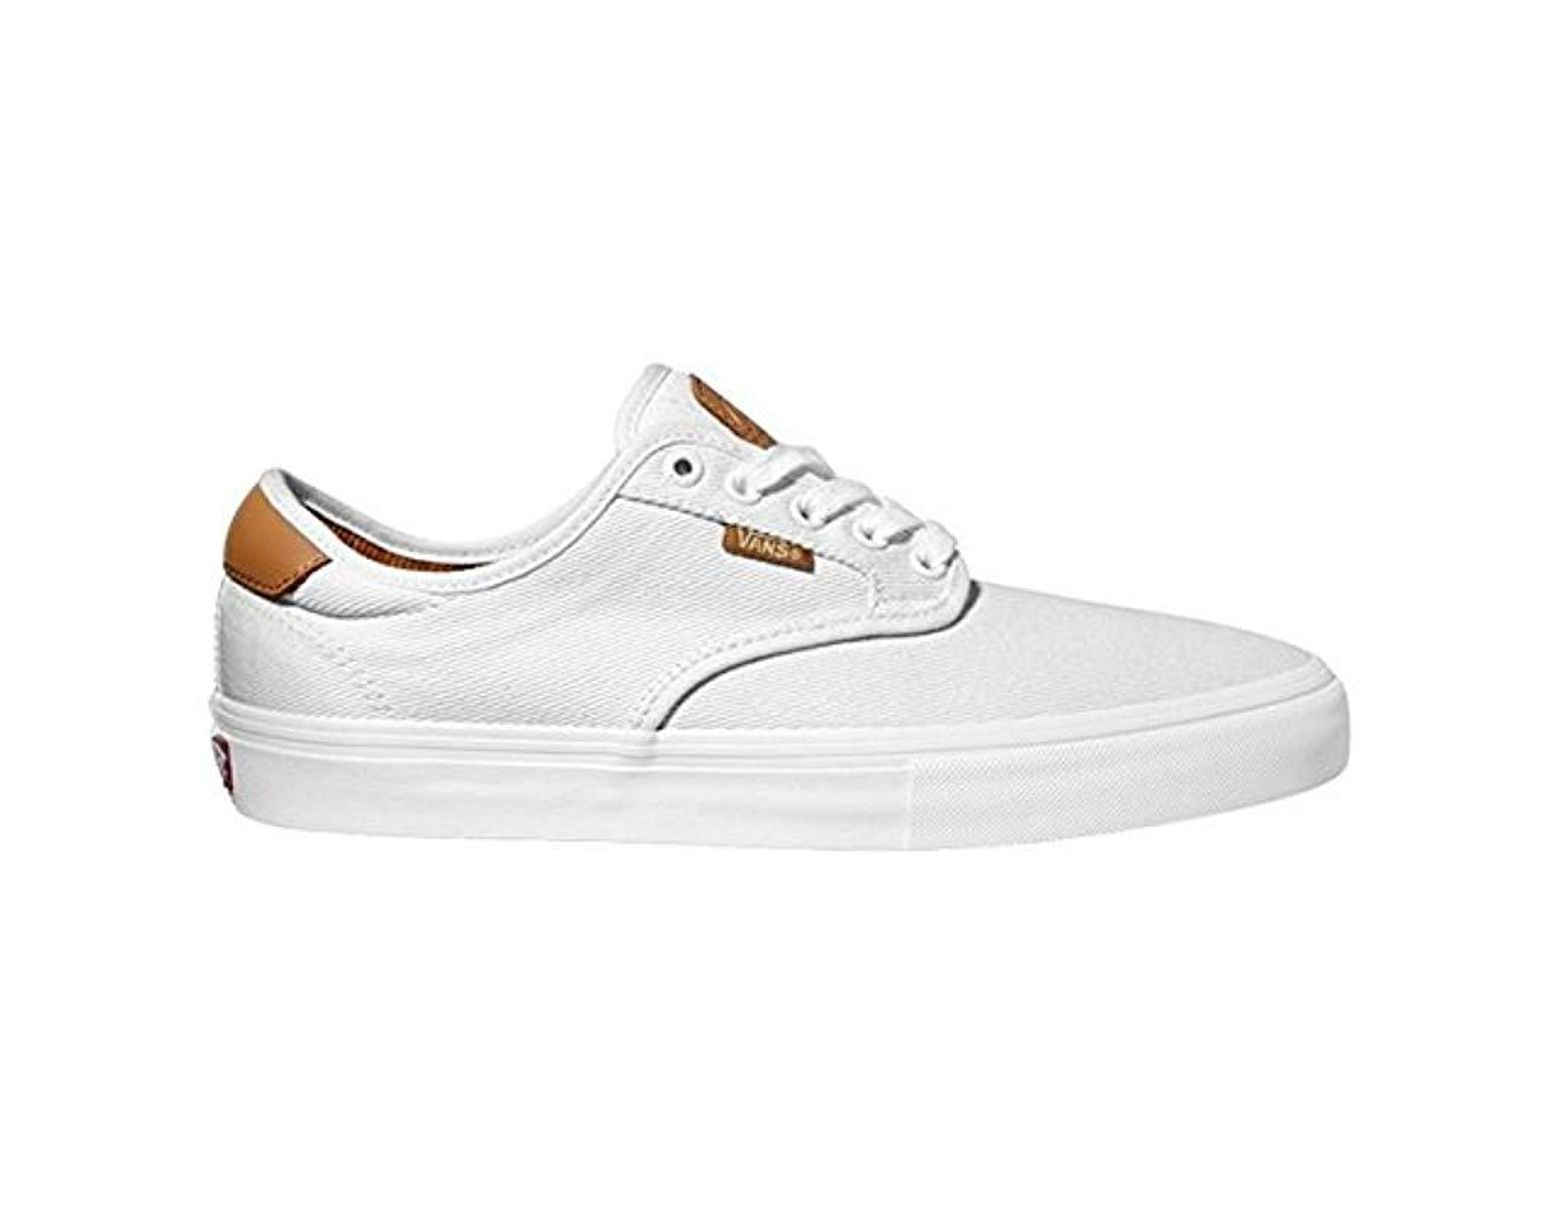 Vans Chima Ferguson Pro Skate Shoes Whitewhite Uk 12 in